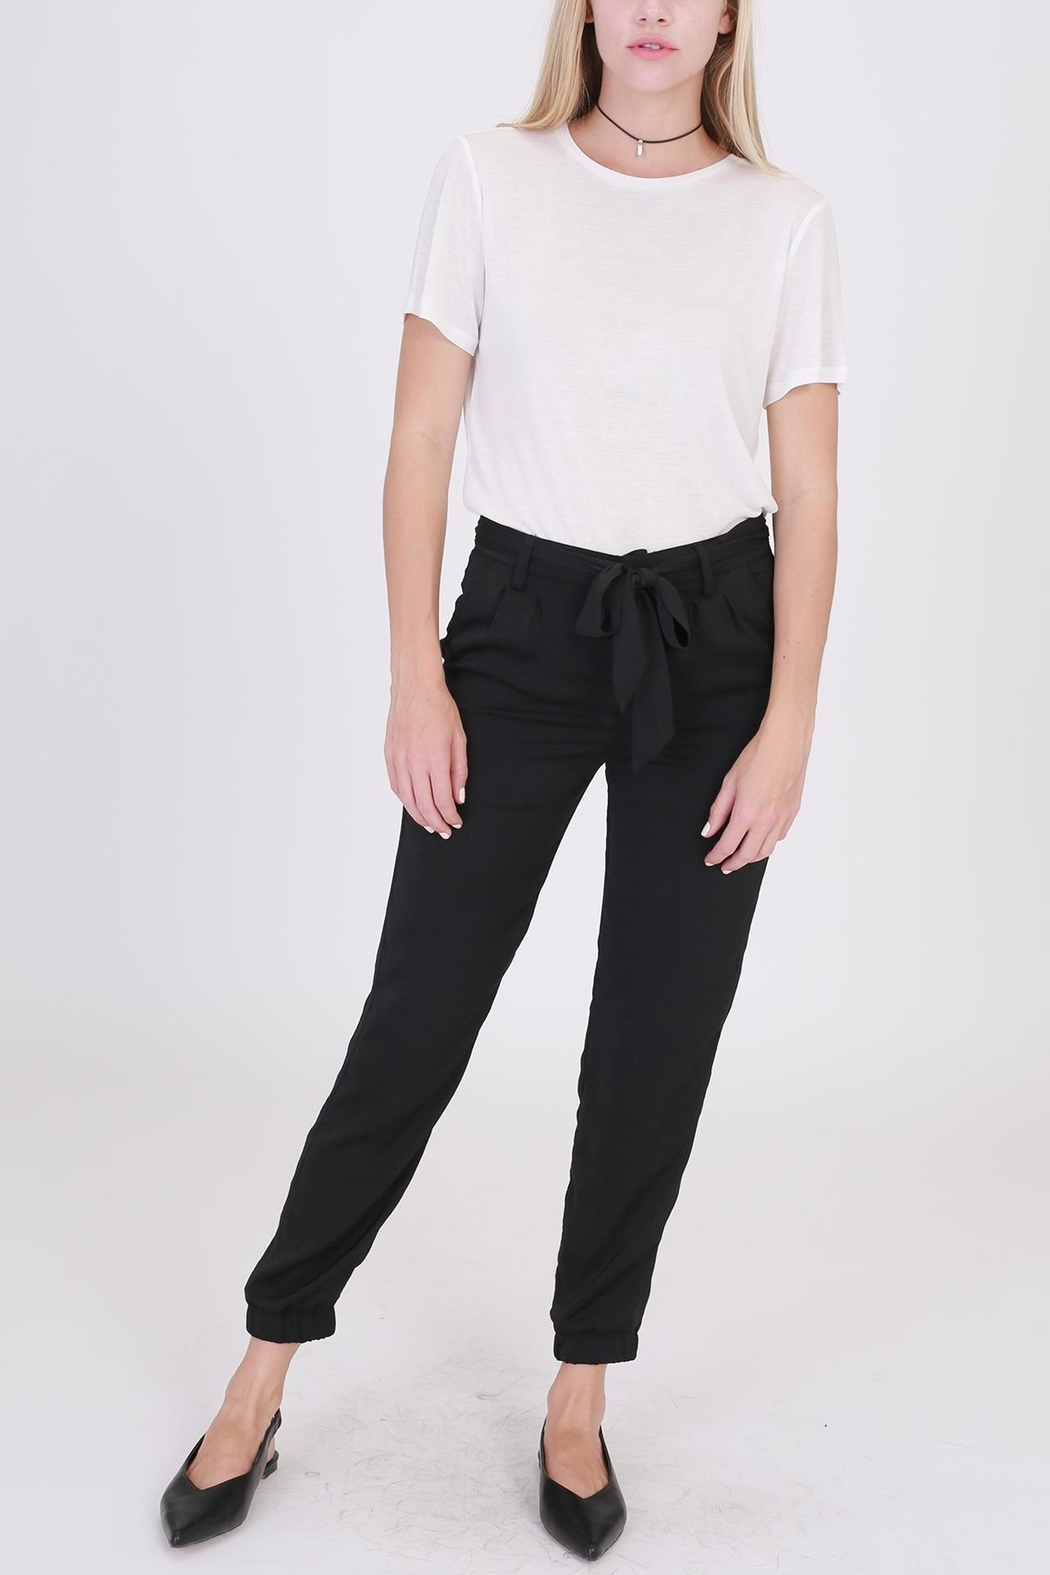 HYFVE Tie Front Pants - Front Cropped Image